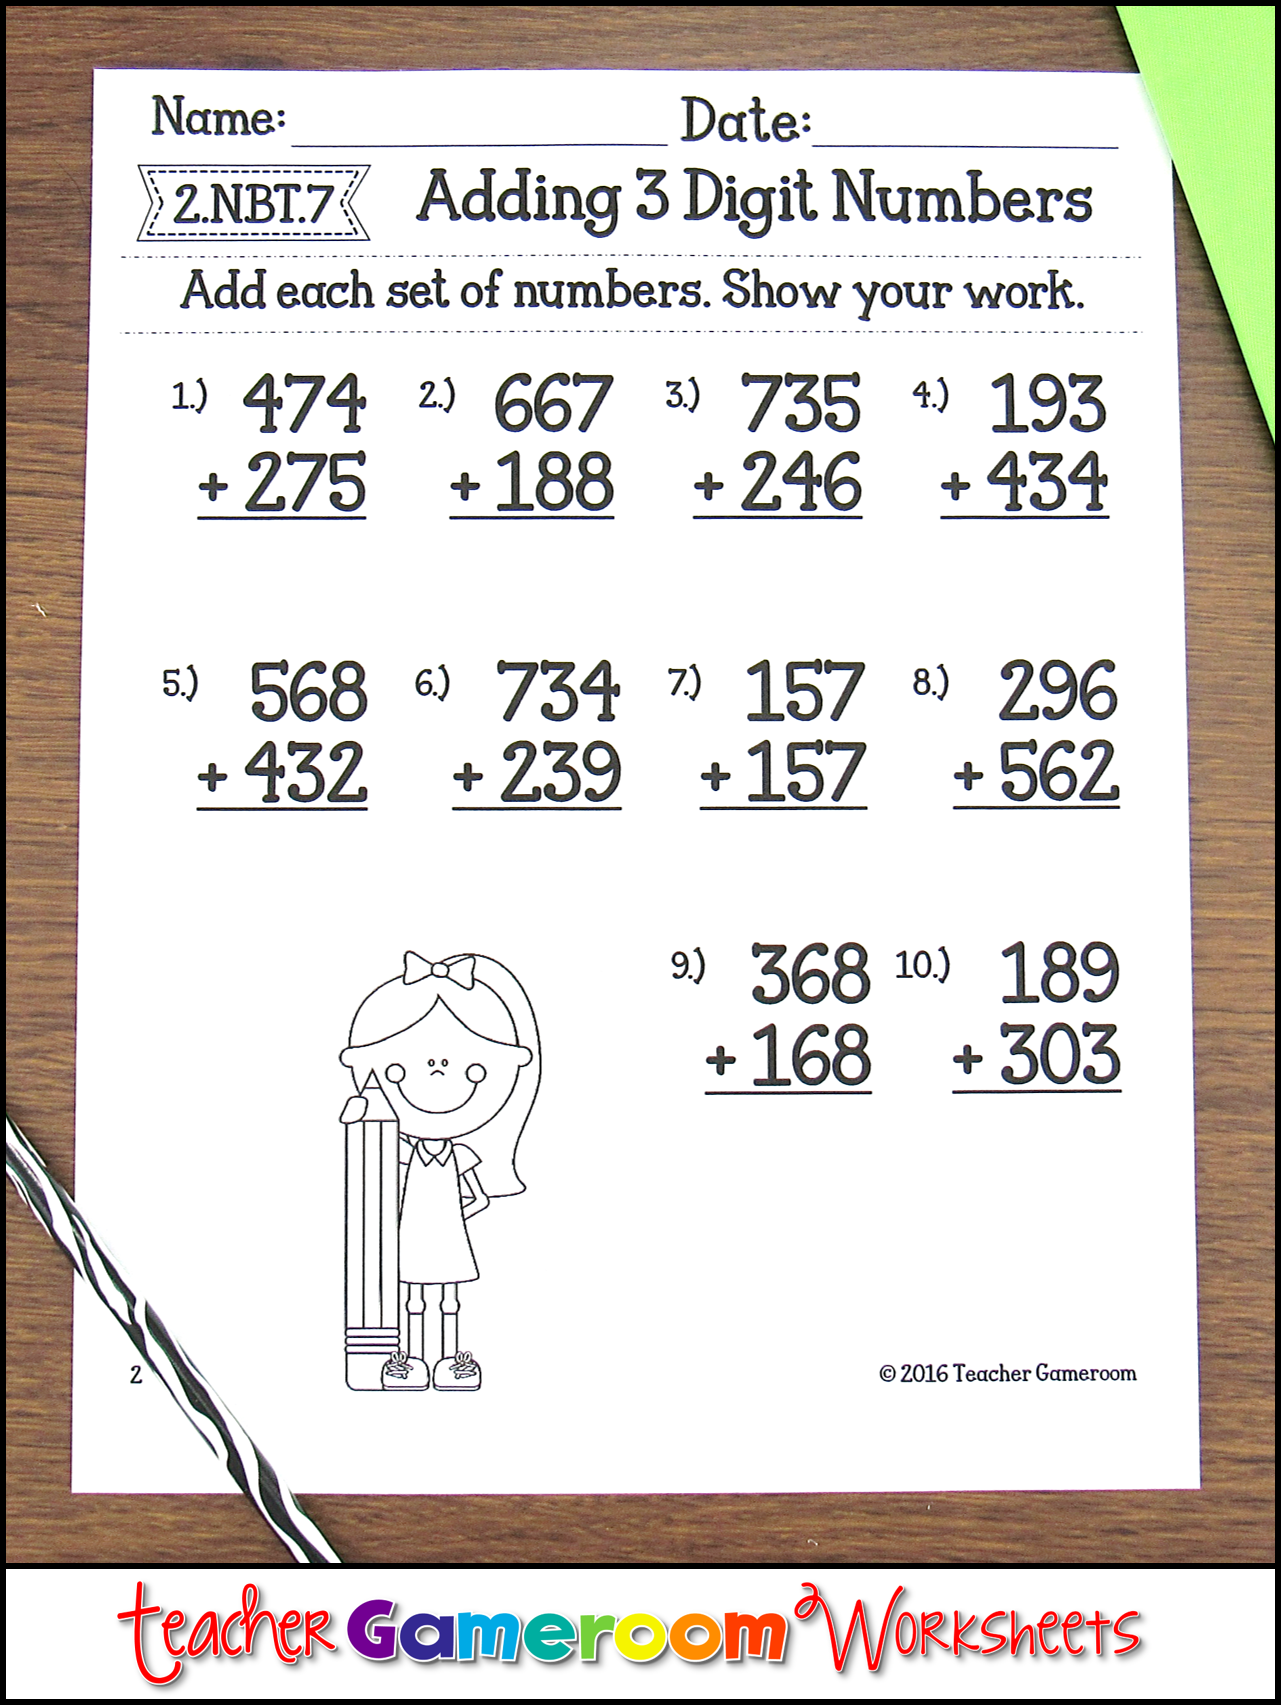 Adding 3 Digit Numbers Worksheets